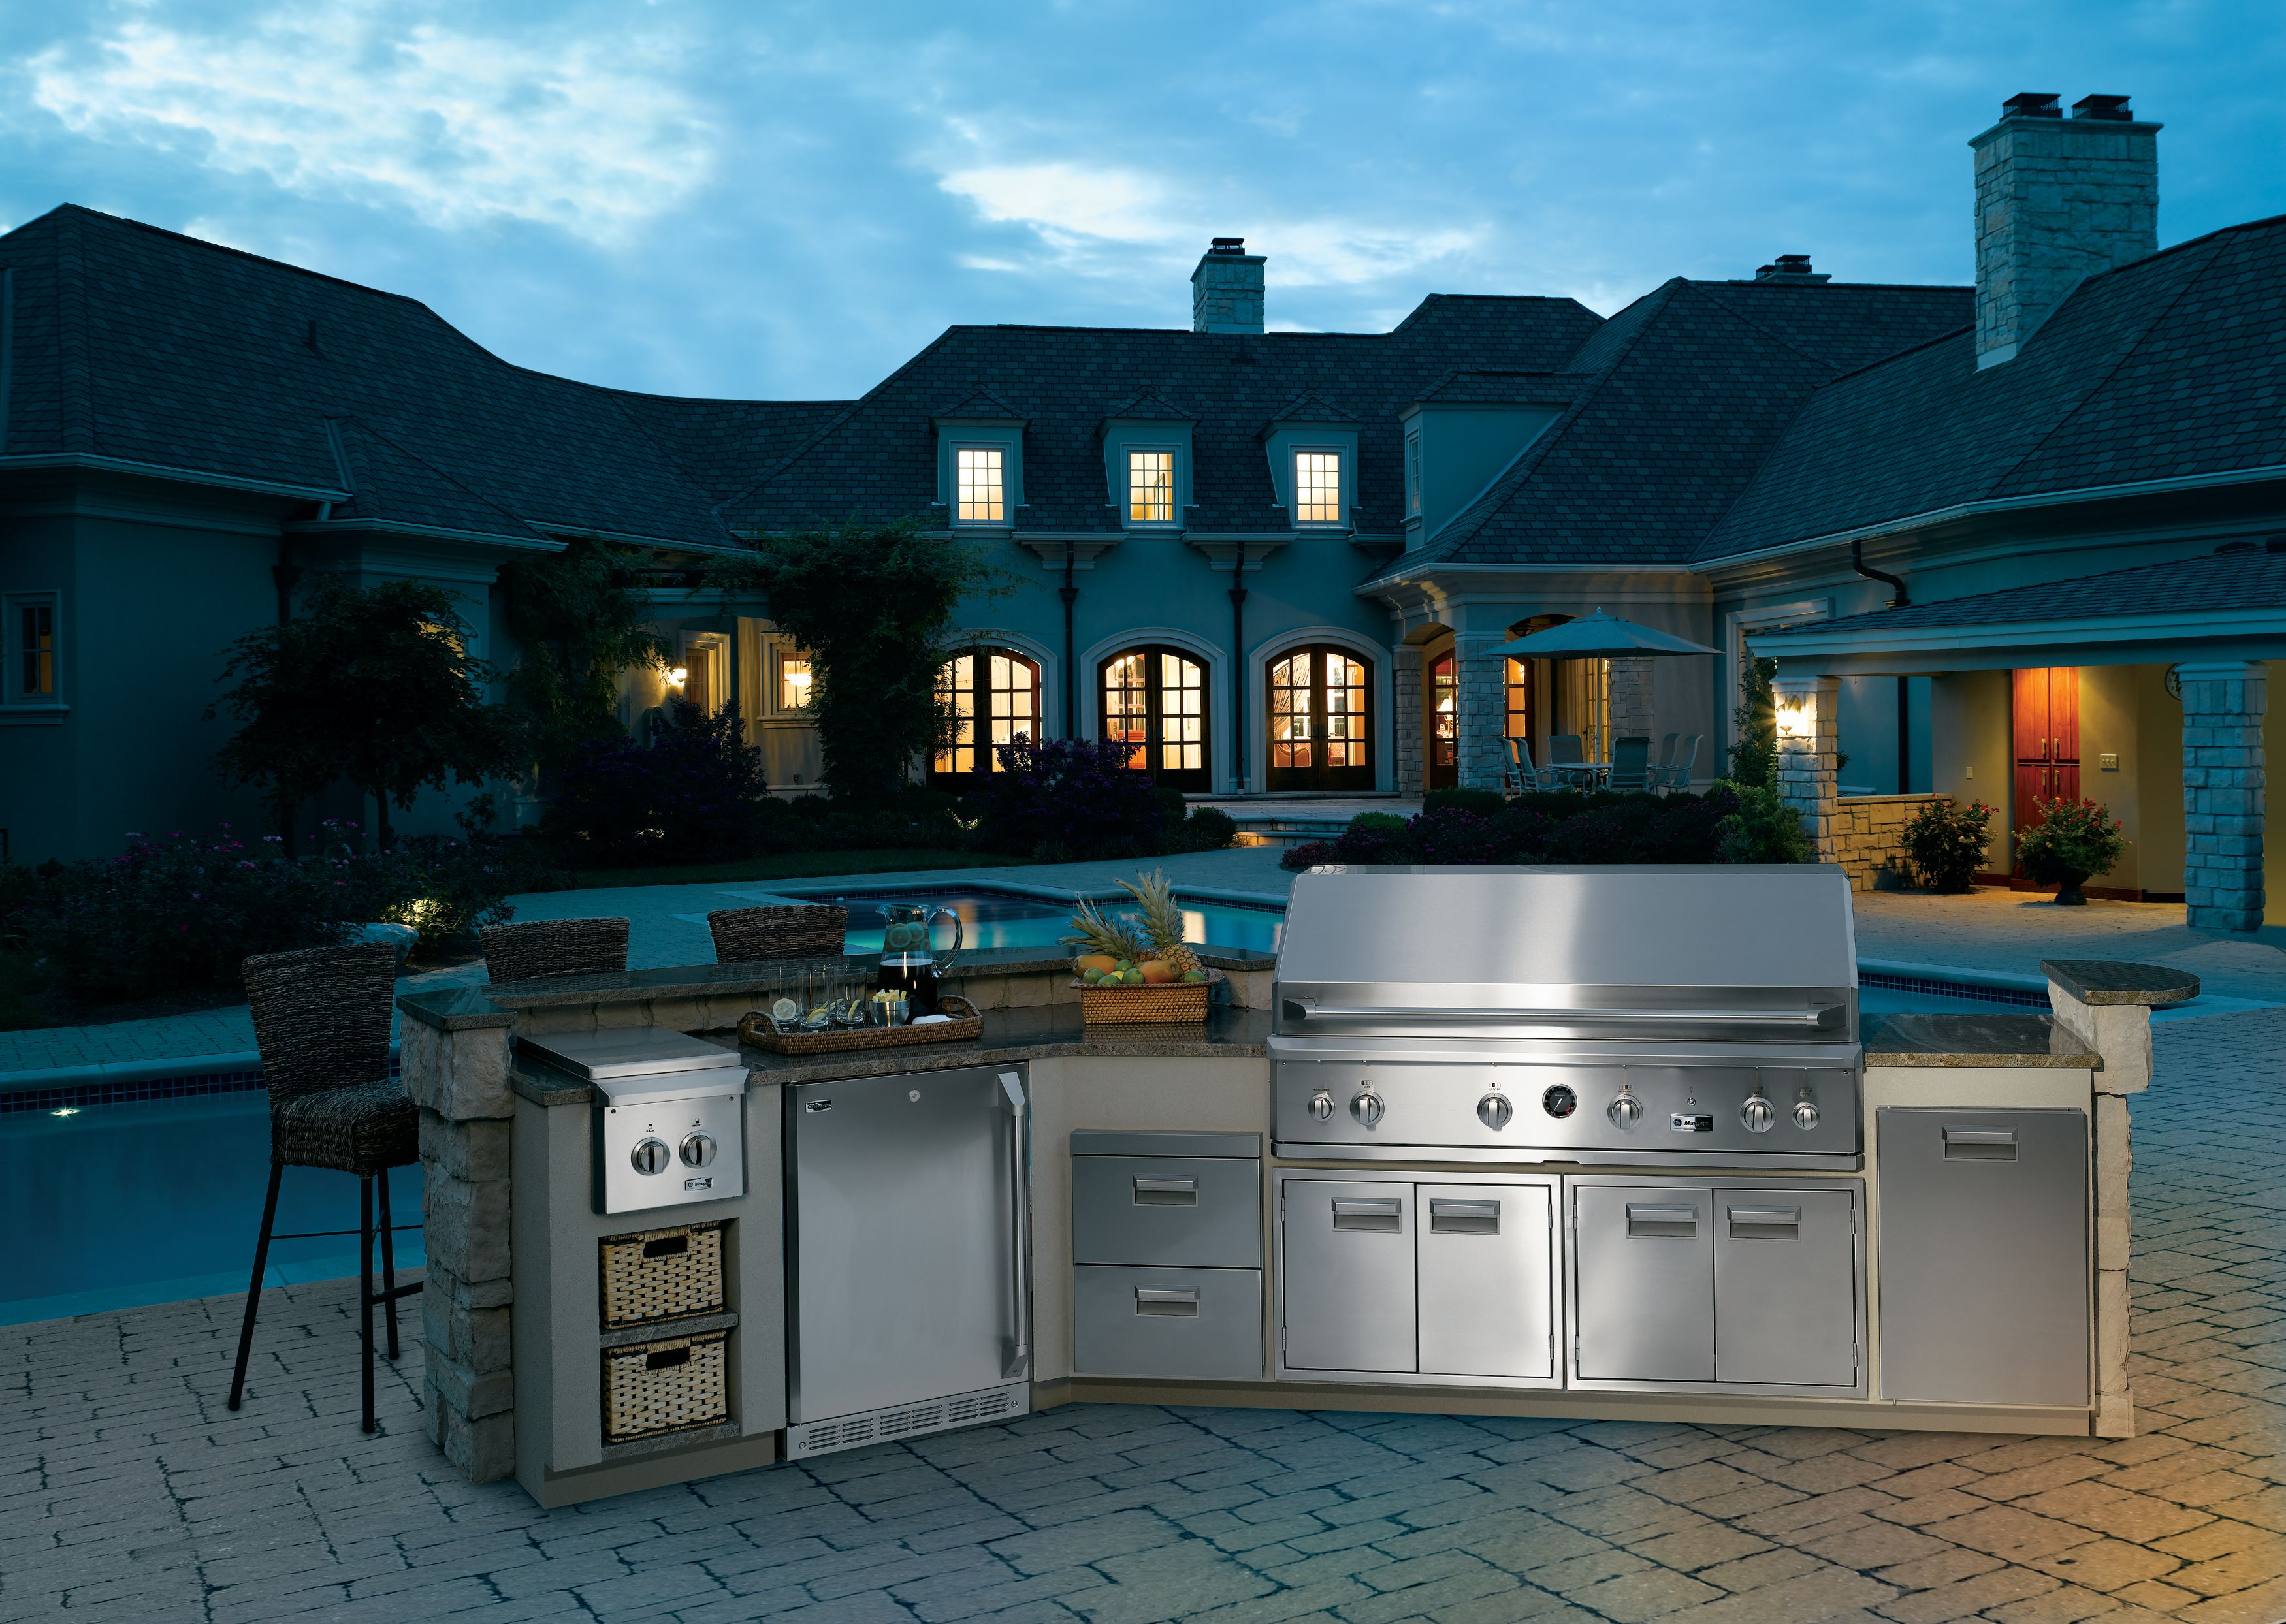 Check out this outdoor GE cooking oasis! Modular outdoor